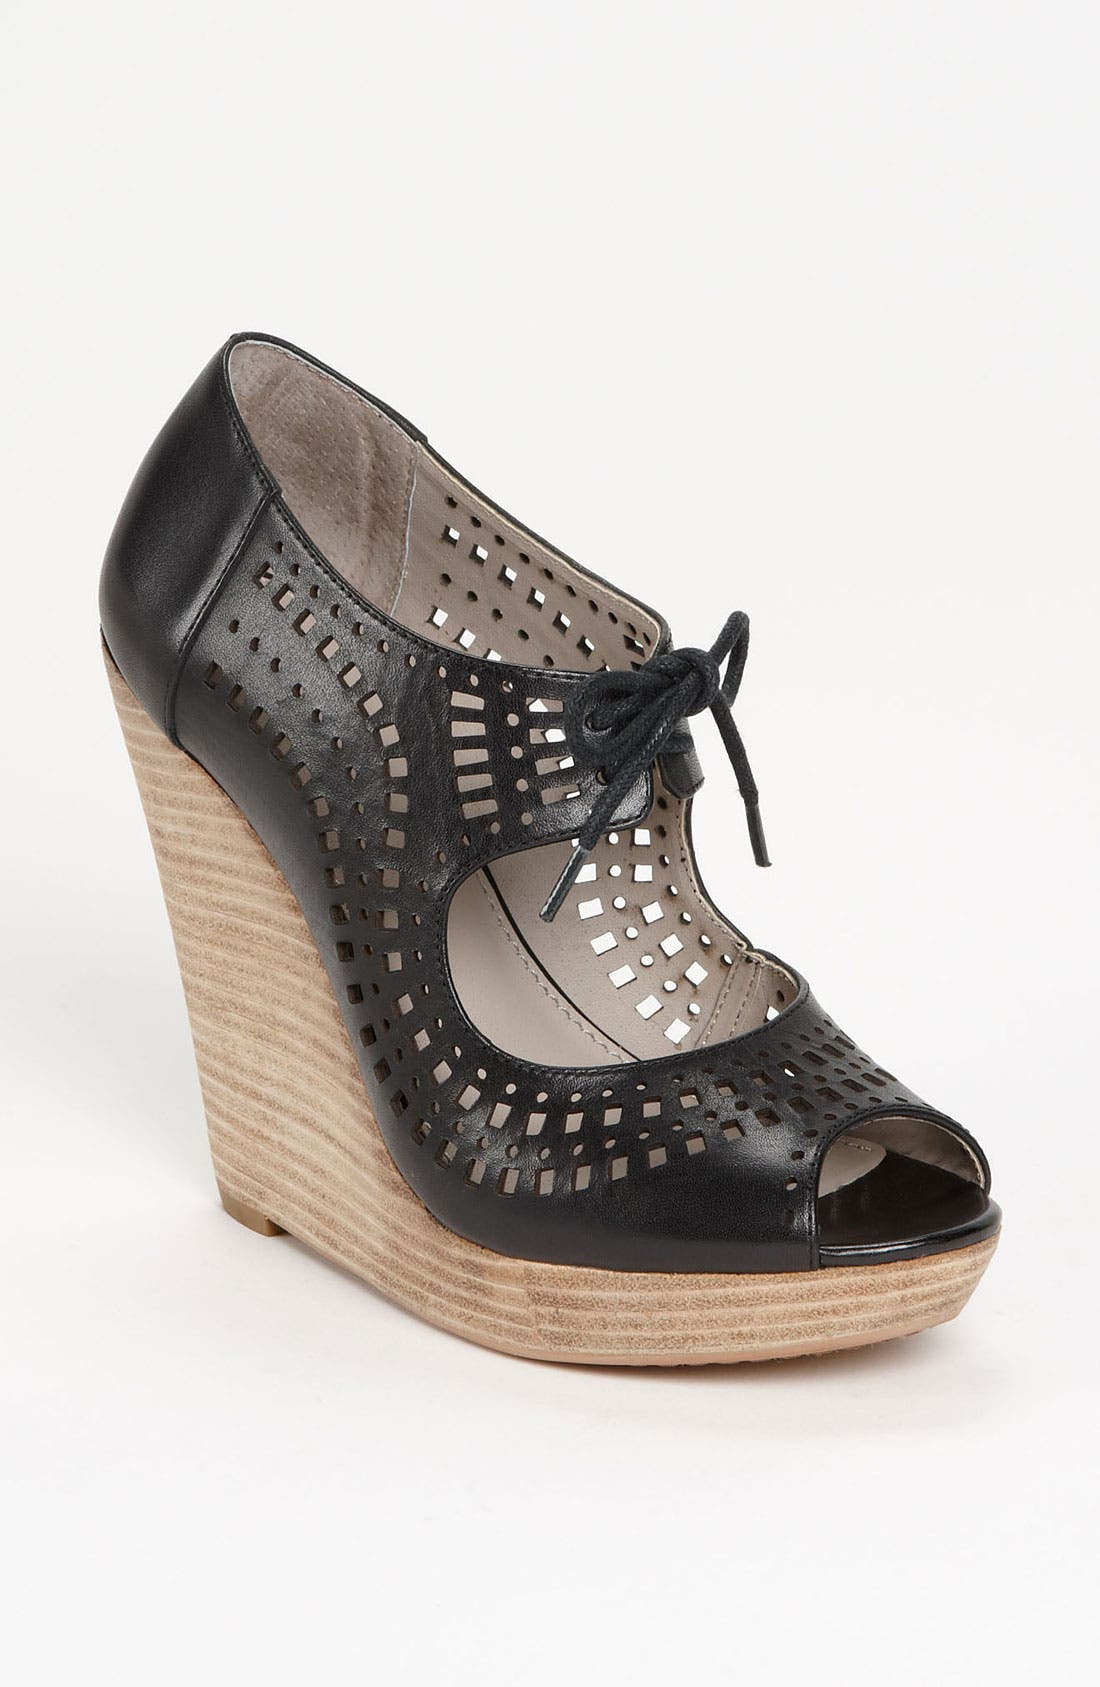 Alternate Image 1 Selected - Hinge® 'Annibell' Wedge Sandal